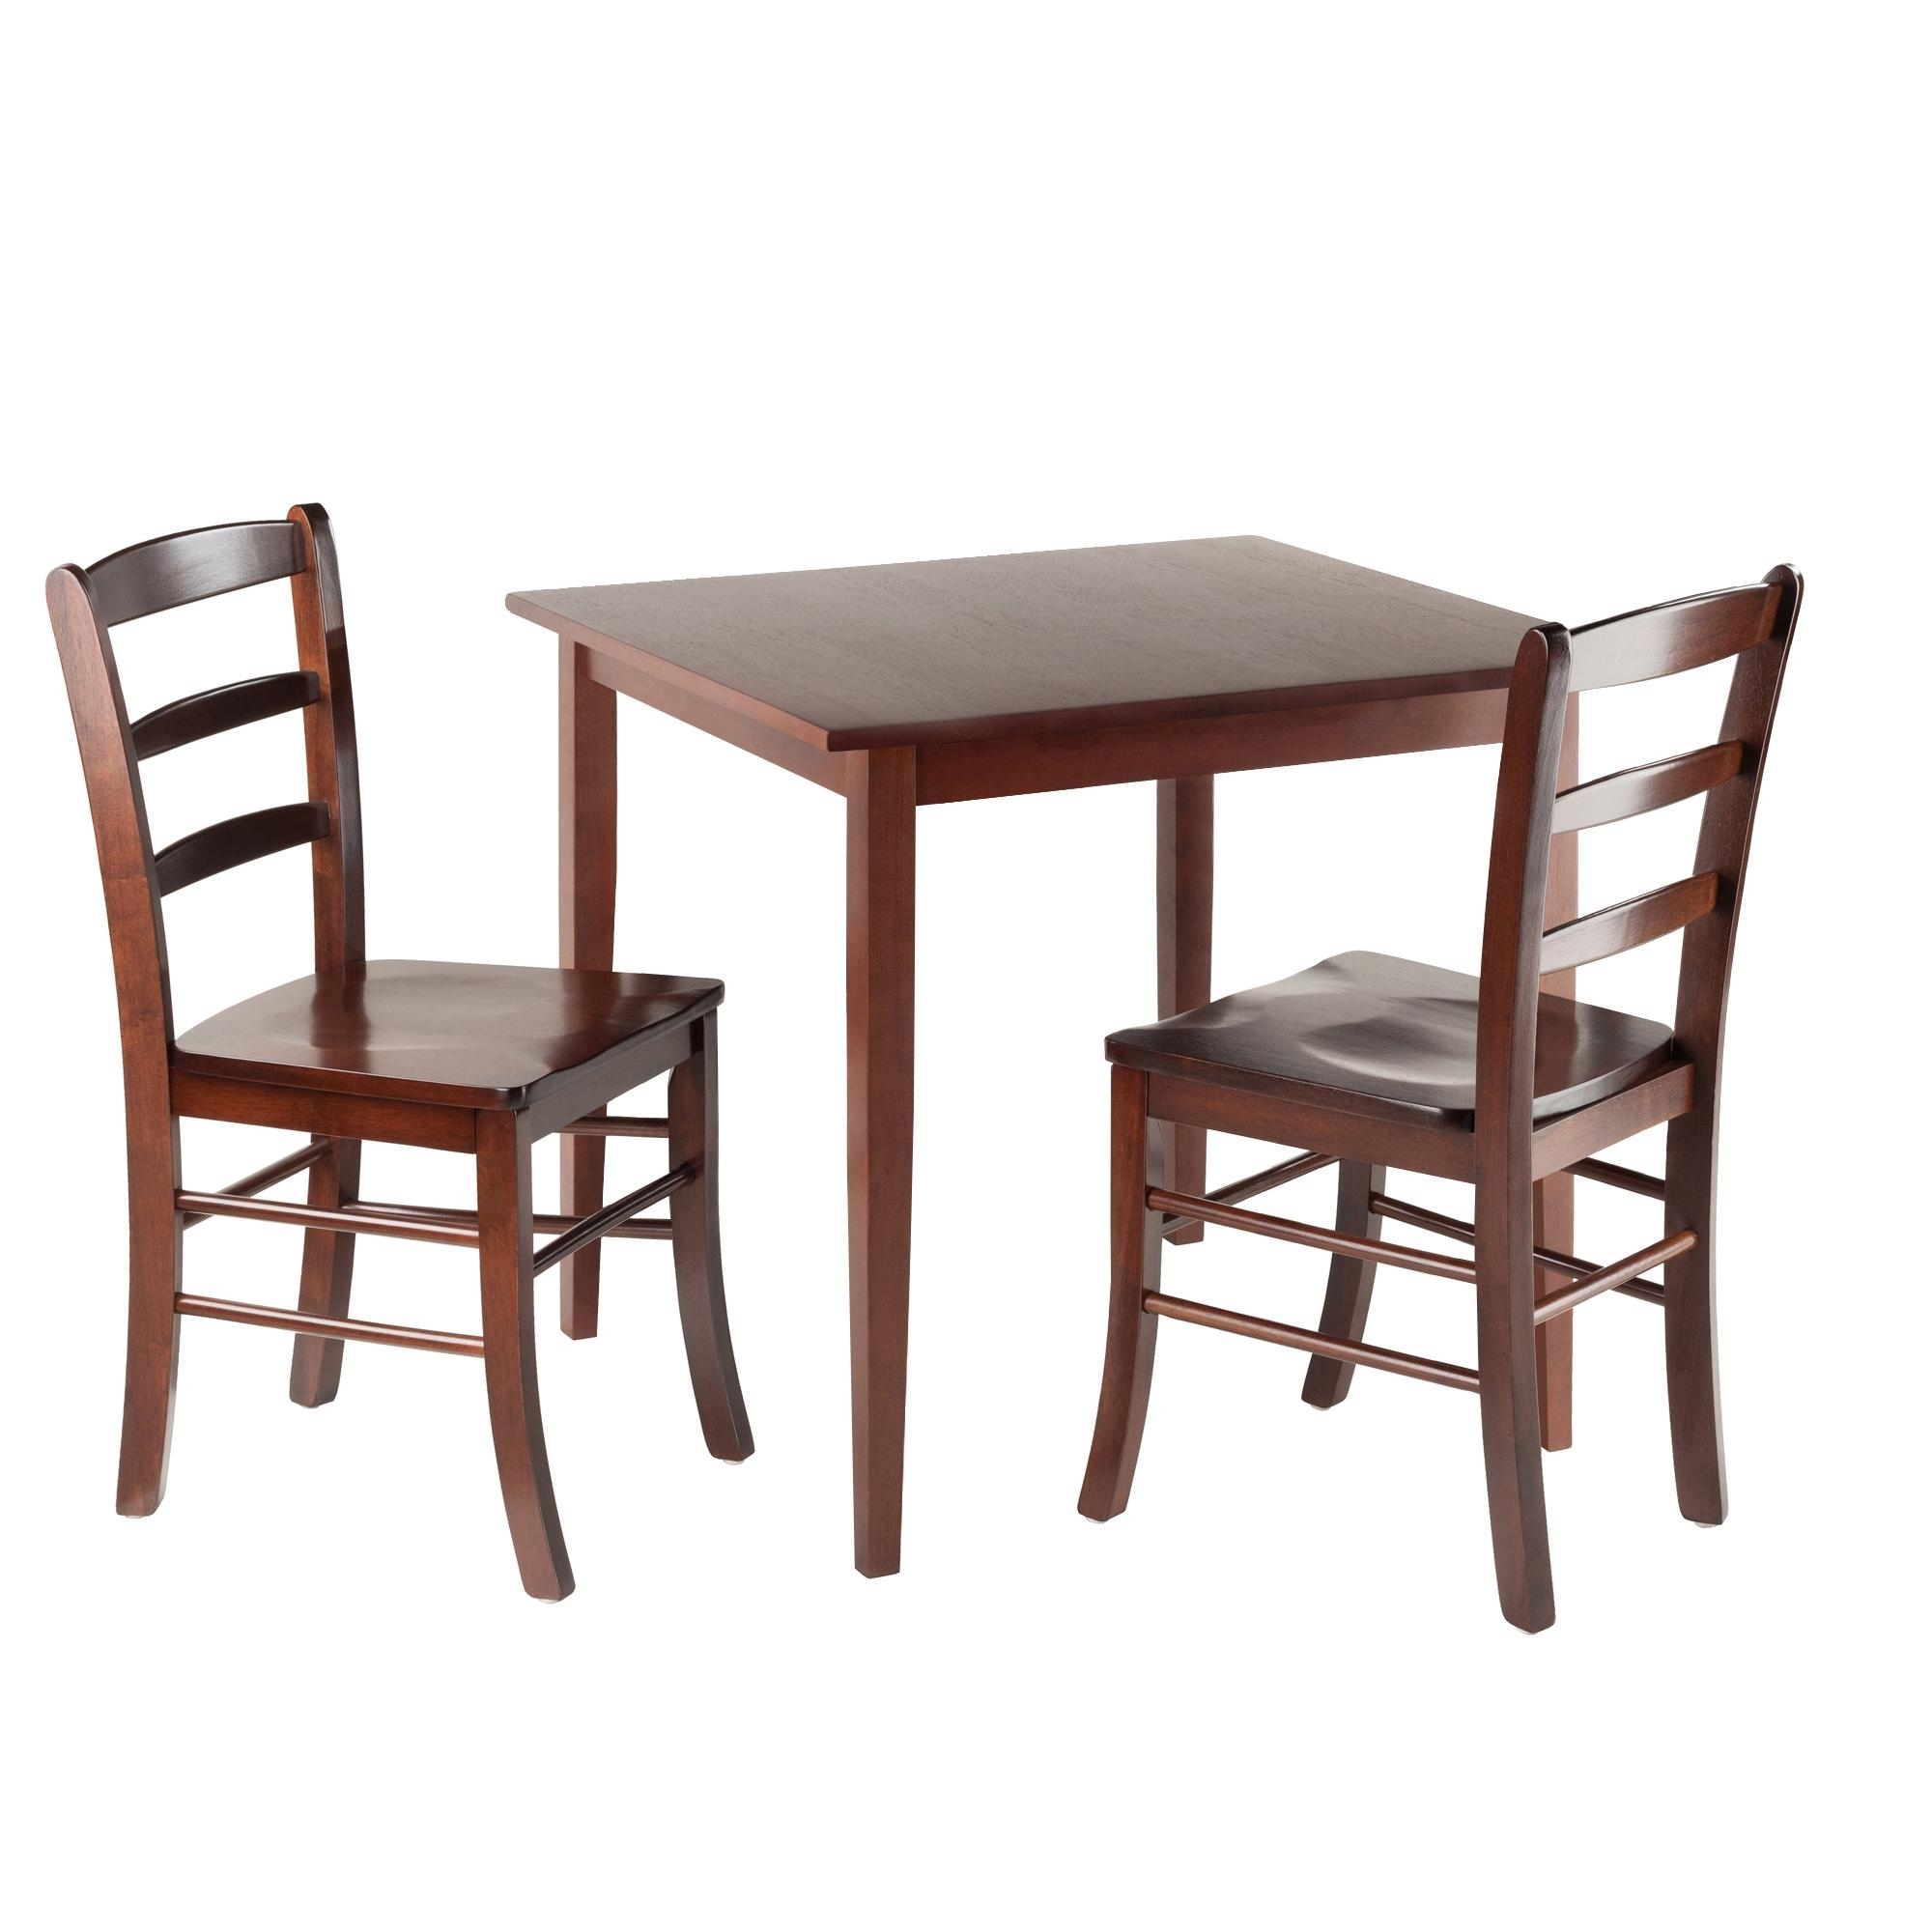 Most Recent Wonderful Small Dining Room Table For Two Chair Set Length Furniture With Two Seat Dining Tables (View 5 of 25)